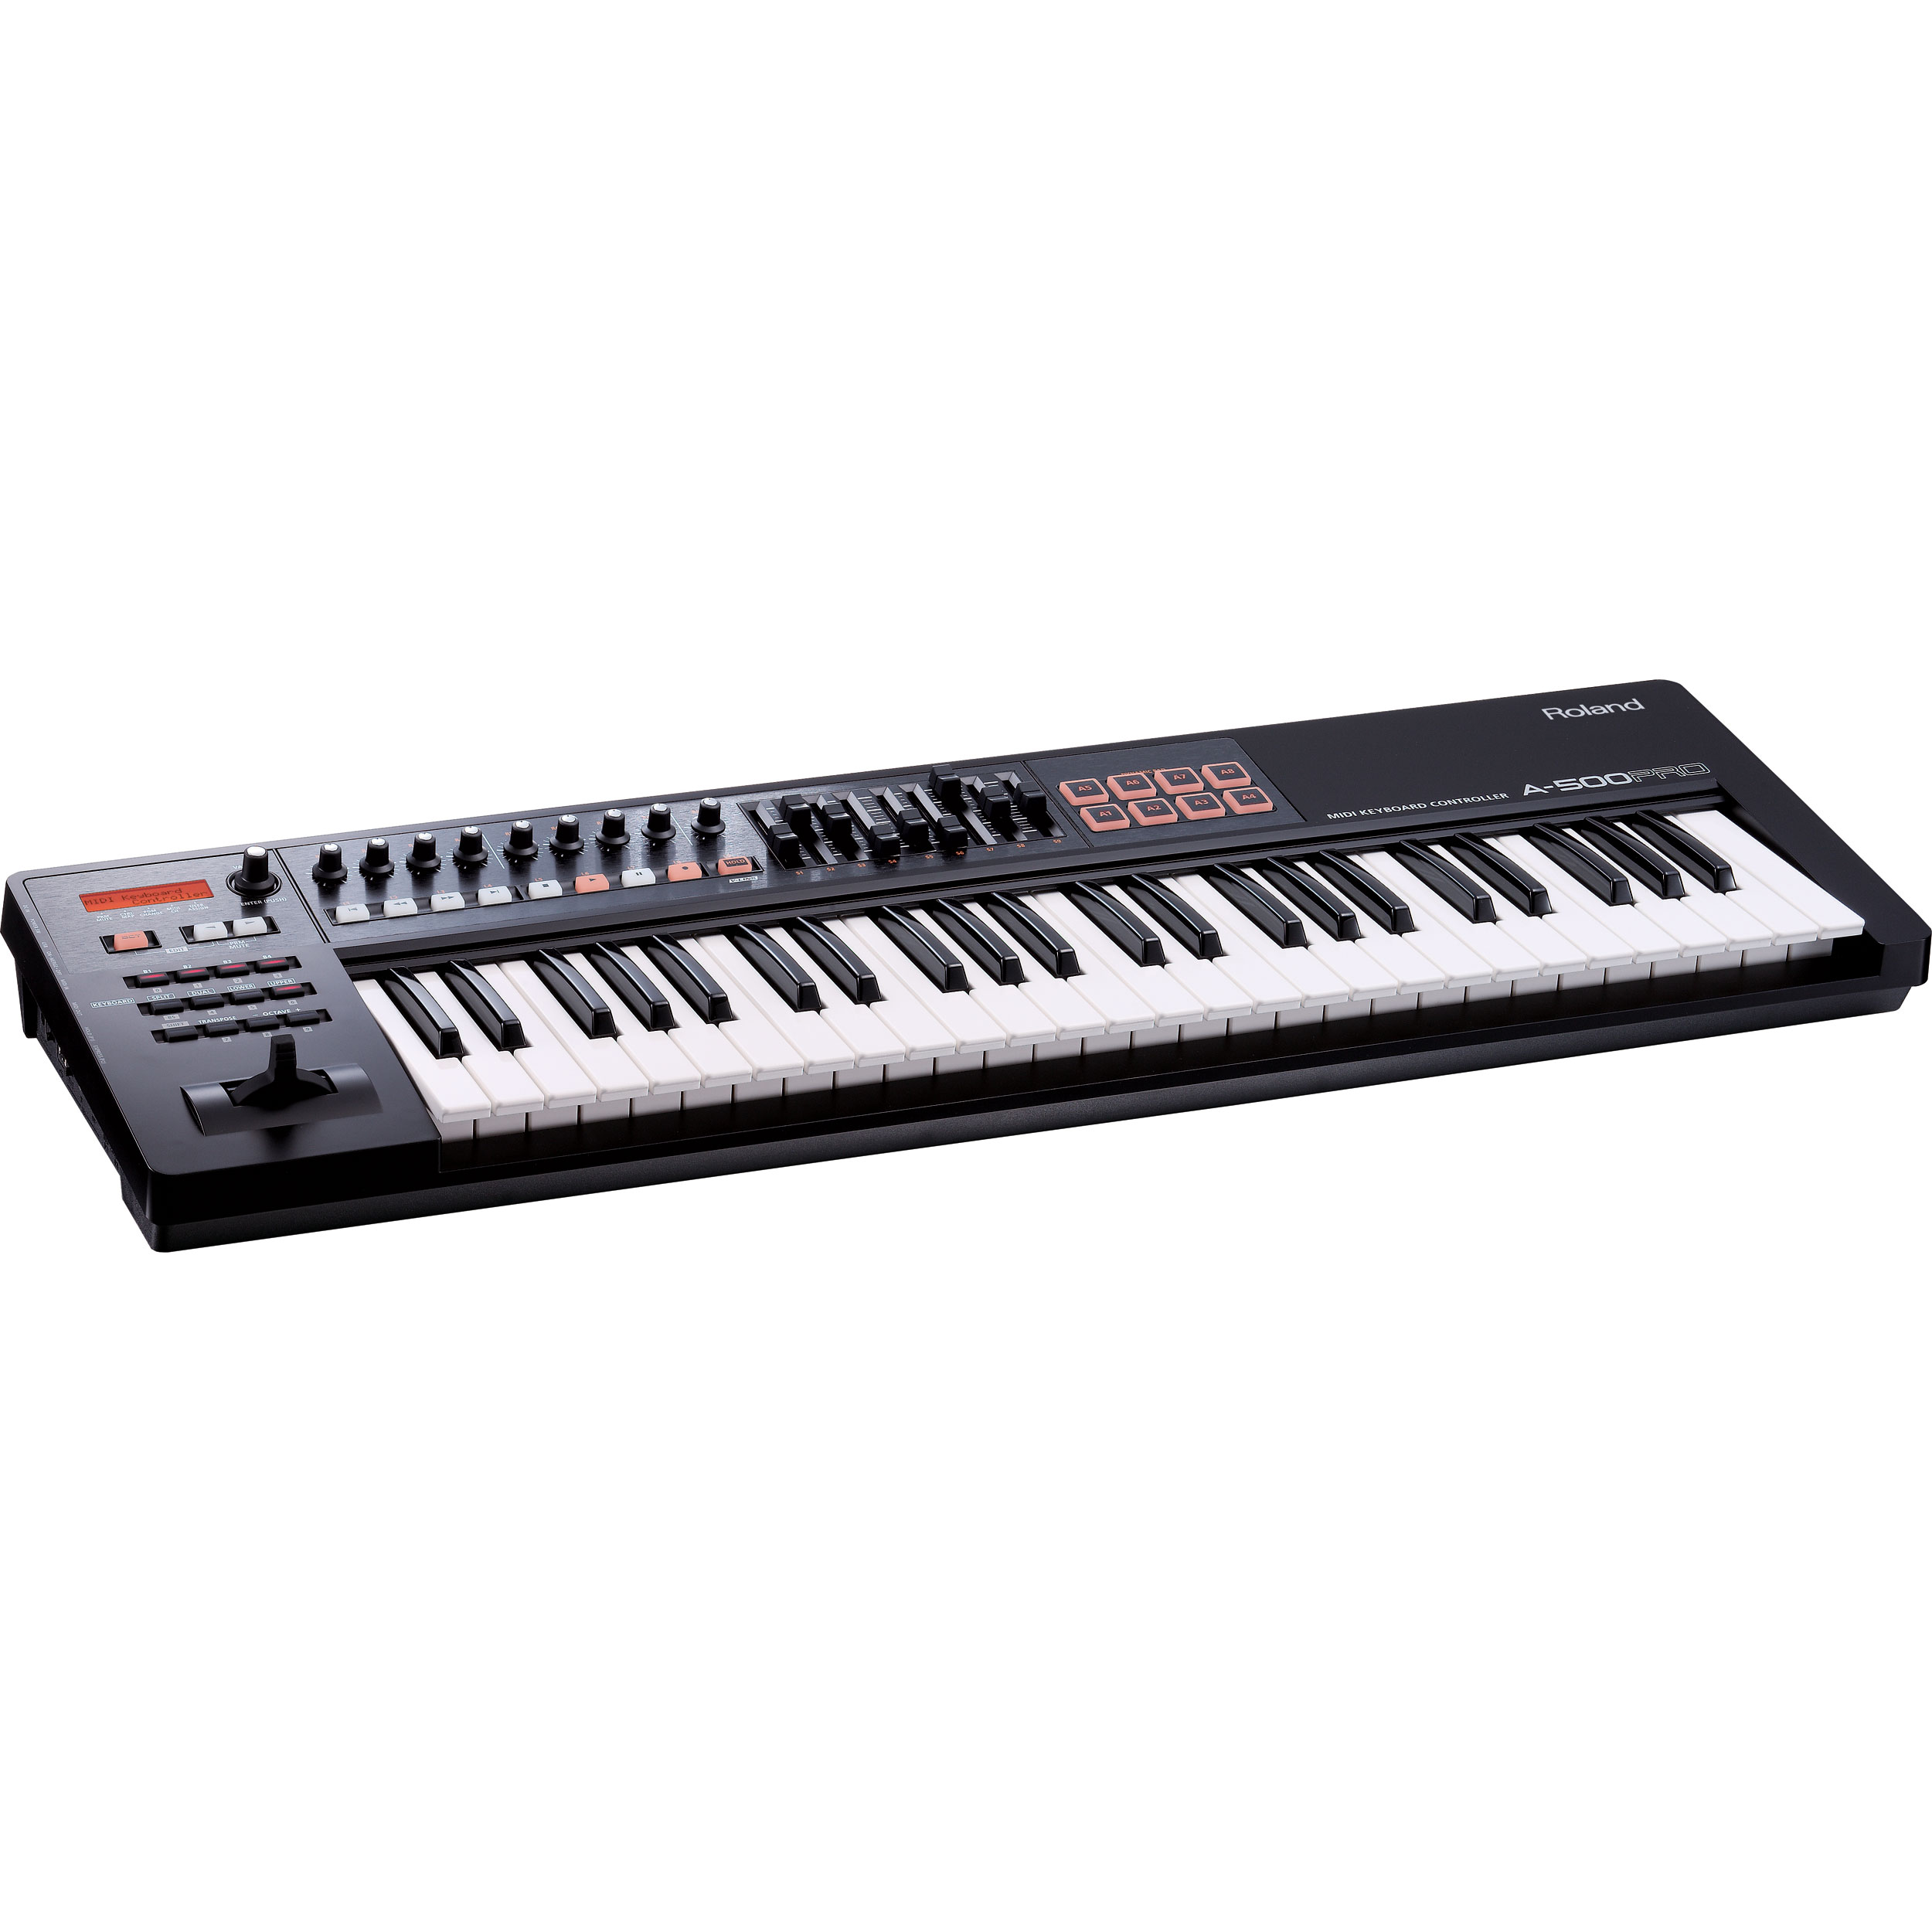 roland a pro series 49 key pro midi keyboard controller a 500pro r. Black Bedroom Furniture Sets. Home Design Ideas